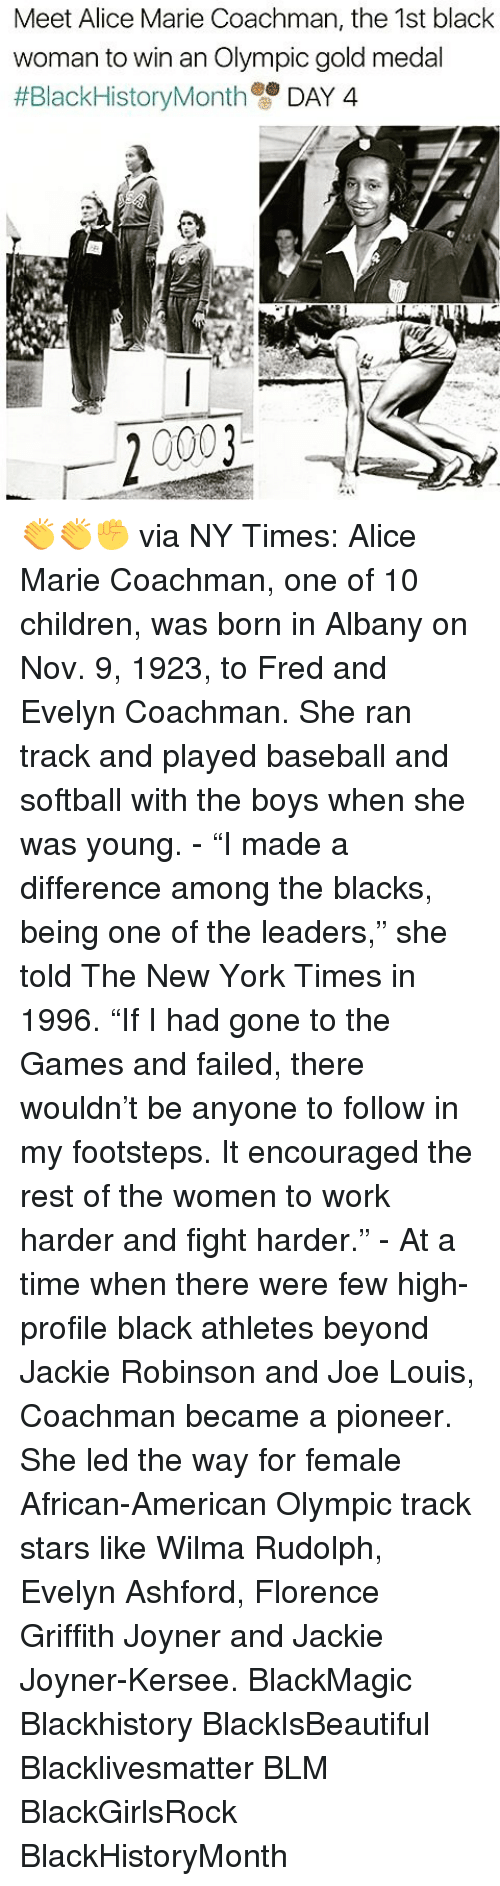 "jacky: Meet Alice Marie Coachman, the 1st black  woman to win an Olympic gold medal  #Black HistoryMonth  DAY 4  20003 👏👏✊ via NY Times: Alice Marie Coachman, one of 10 children, was born in Albany on Nov. 9, 1923, to Fred and Evelyn Coachman. She ran track and played baseball and softball with the boys when she was young. - ""I made a difference among the blacks, being one of the leaders,"" she told The New York Times in 1996. ""If I had gone to the Games and failed, there wouldn't be anyone to follow in my footsteps. It encouraged the rest of the women to work harder and fight harder."" - At a time when there were few high-profile black athletes beyond Jackie Robinson and Joe Louis, Coachman became a pioneer. She led the way for female African-American Olympic track stars like Wilma Rudolph, Evelyn Ashford, Florence Griffith Joyner and Jackie Joyner-Kersee. BlackMagic Blackhistory BlackIsBeautiful Blacklivesmatter BLM BlackGirlsRock BlackHistoryMonth"